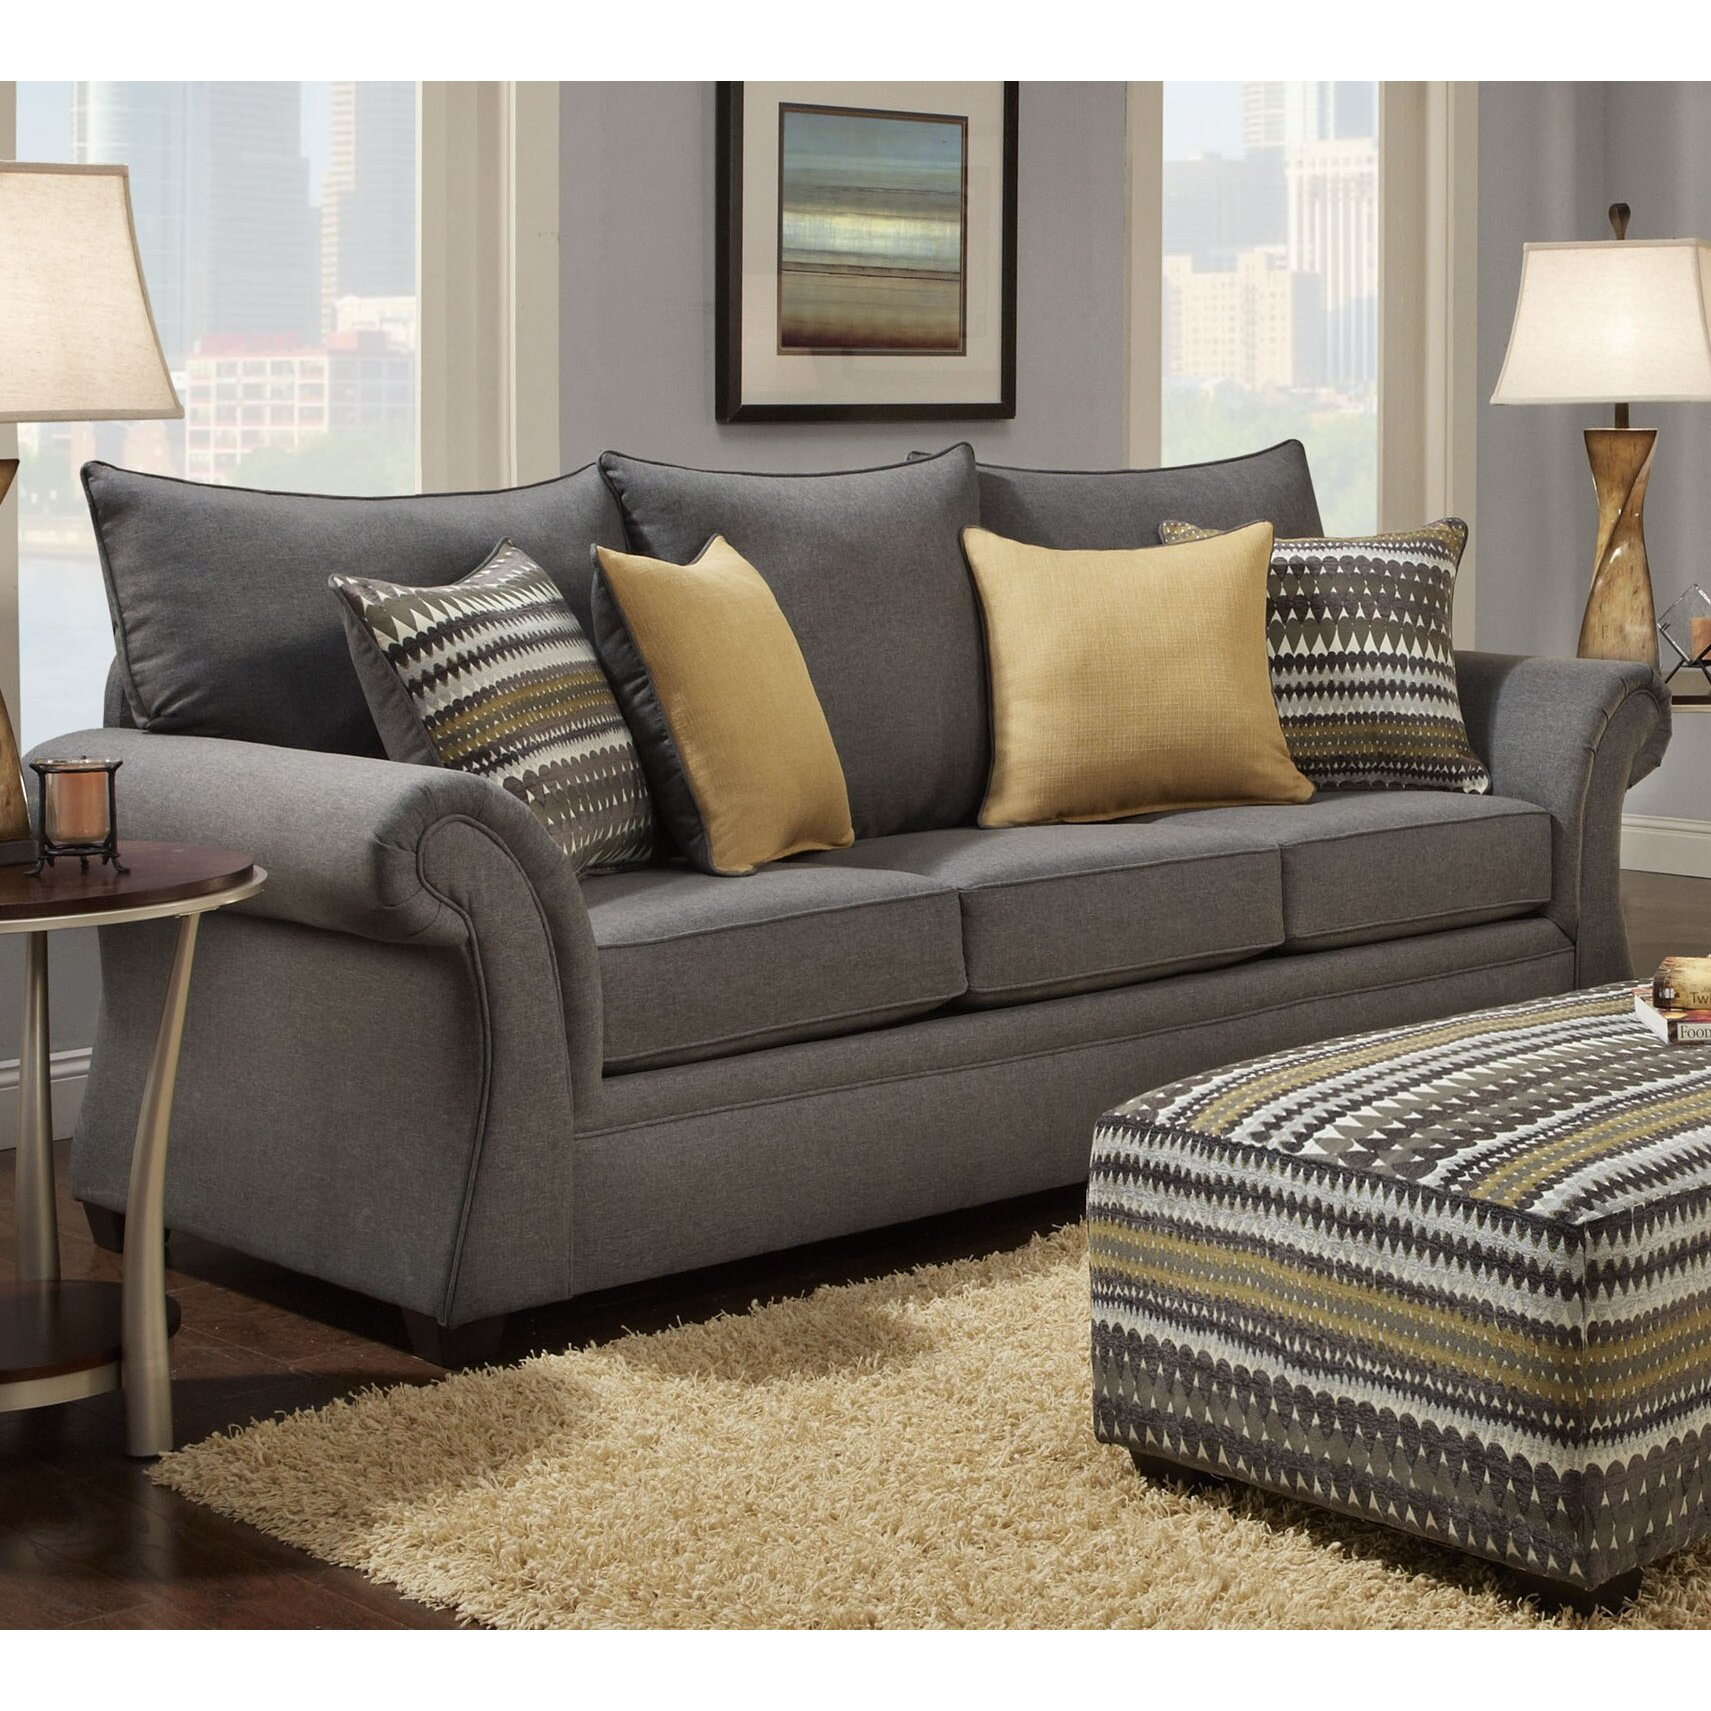 Living Room Collection Furniture Chelsea Home Furniture North Andover Living Room Collection